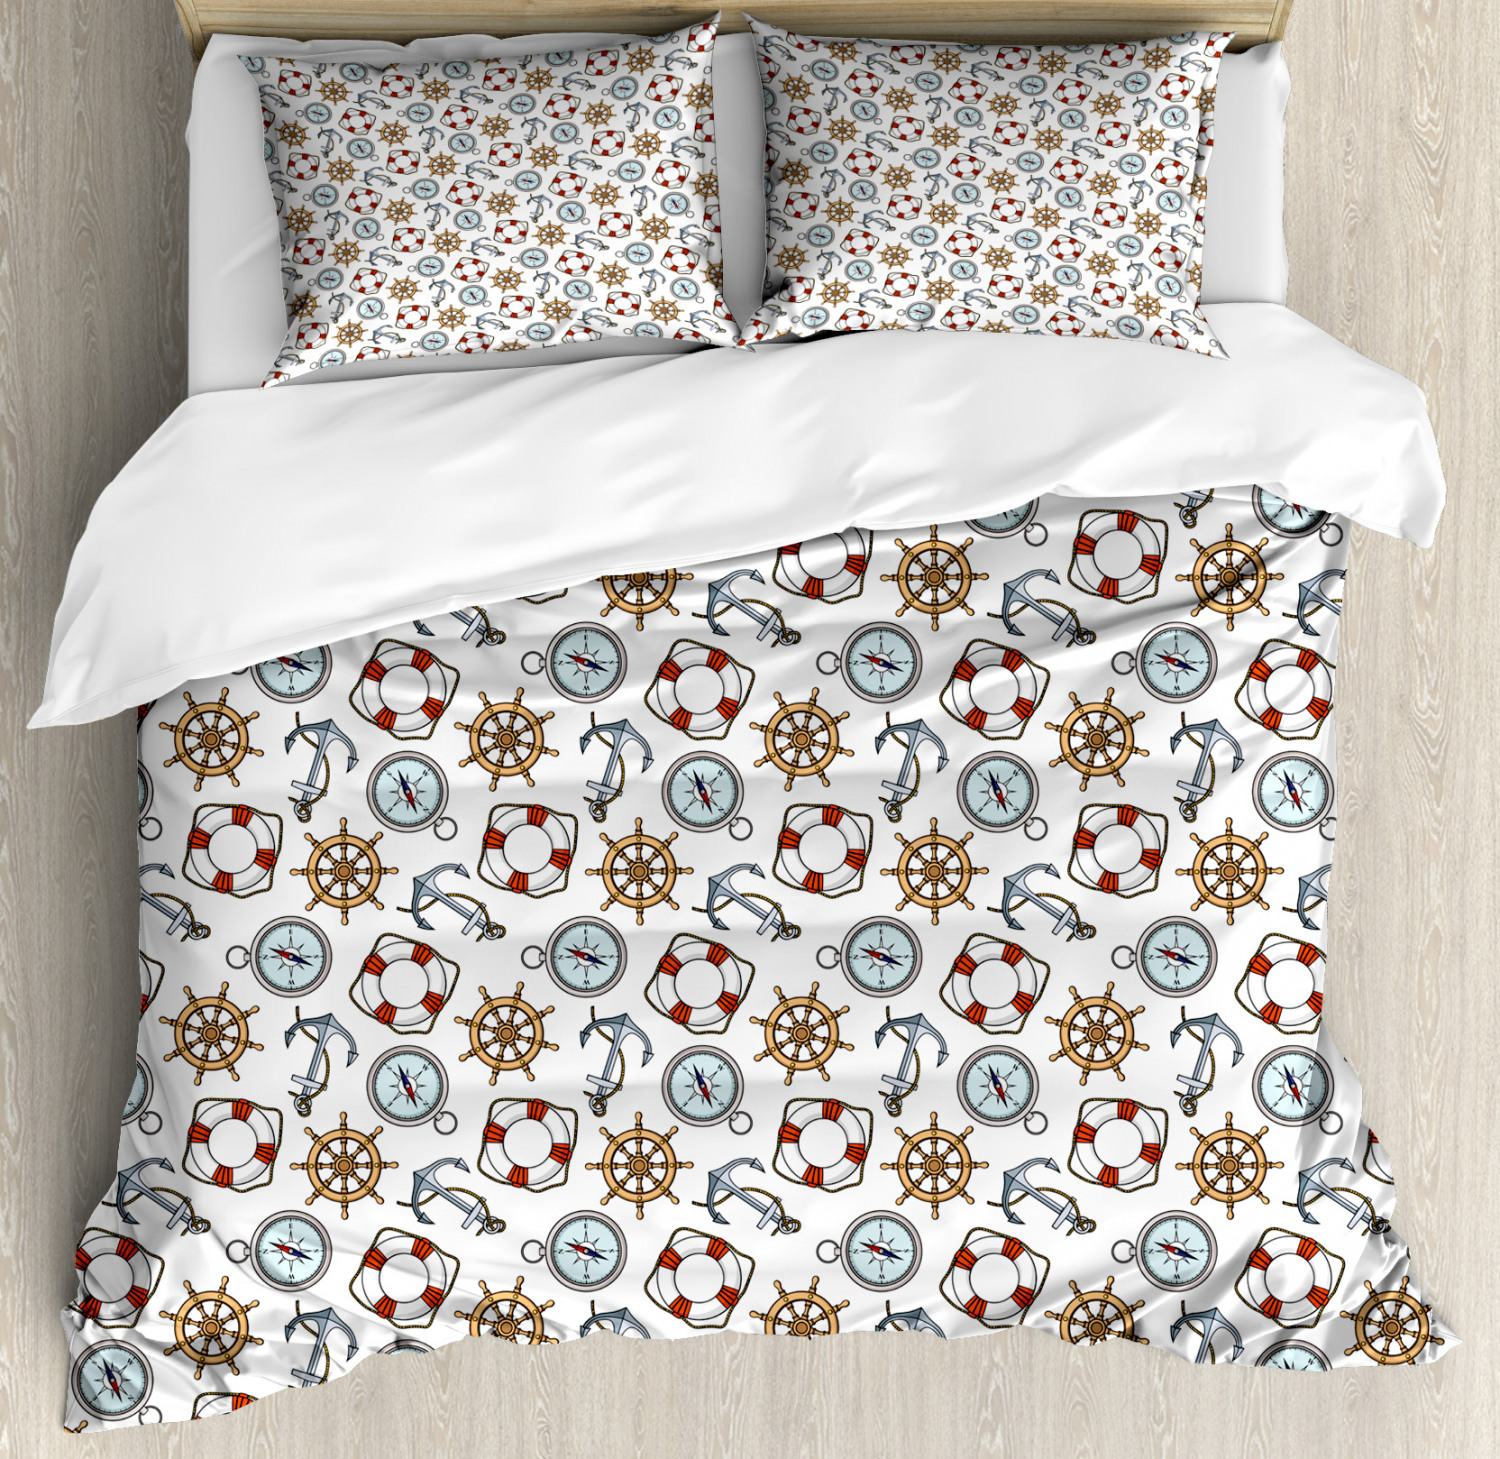 Compass Duvet Cover Set with Pillow Shams Helm Life Buoy Anchor Print